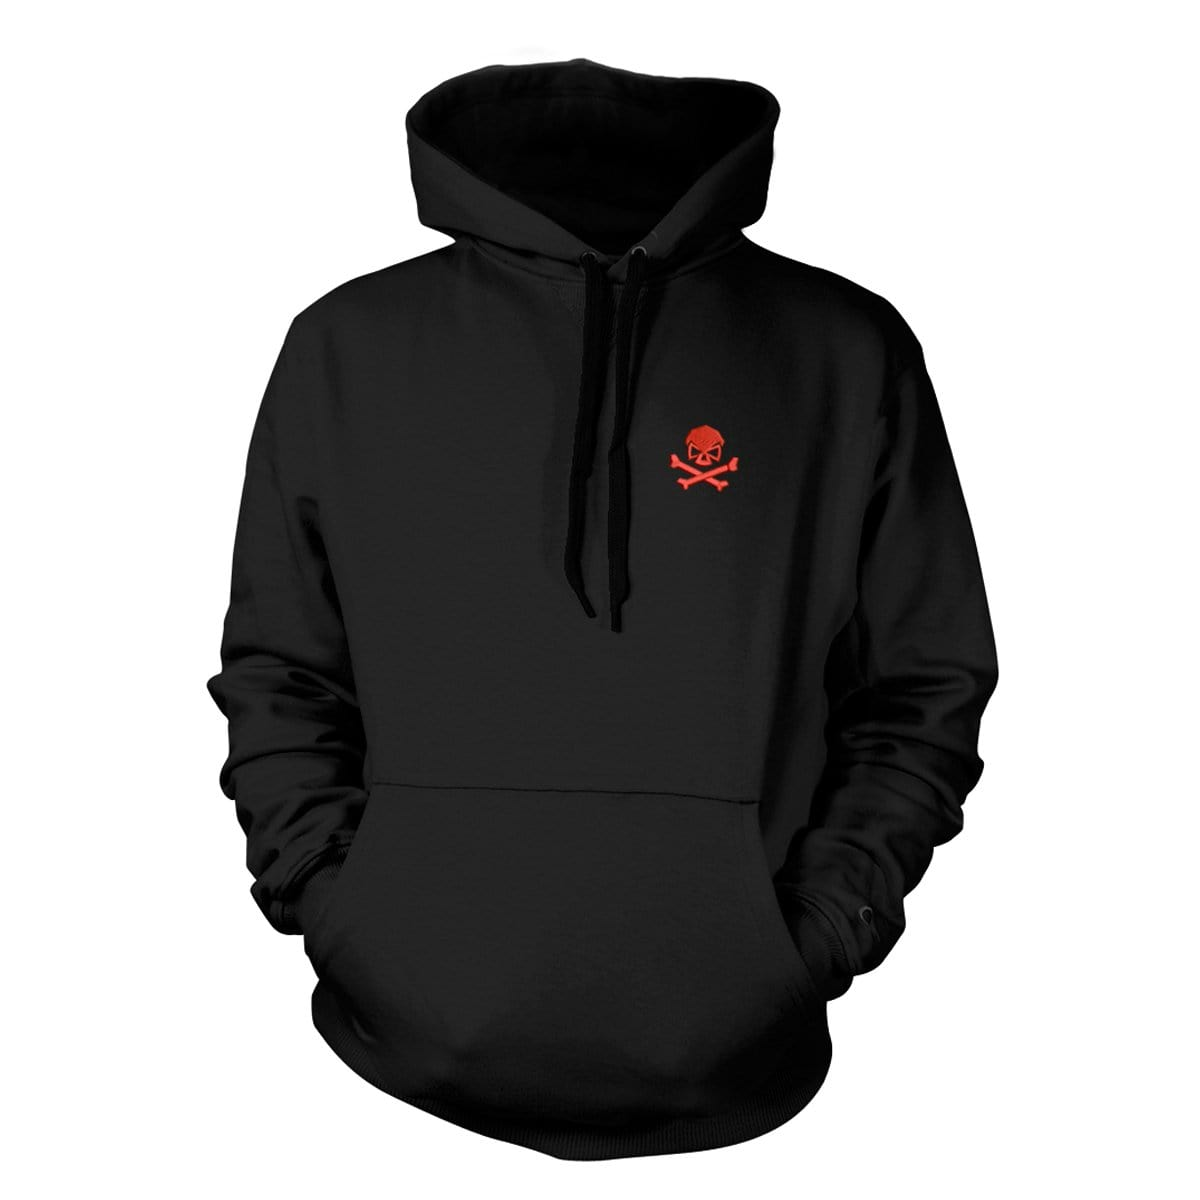 Skull & Bones Hoodie (Embroidered) - Black/Red - Hoodies - Pipe Hitters Union